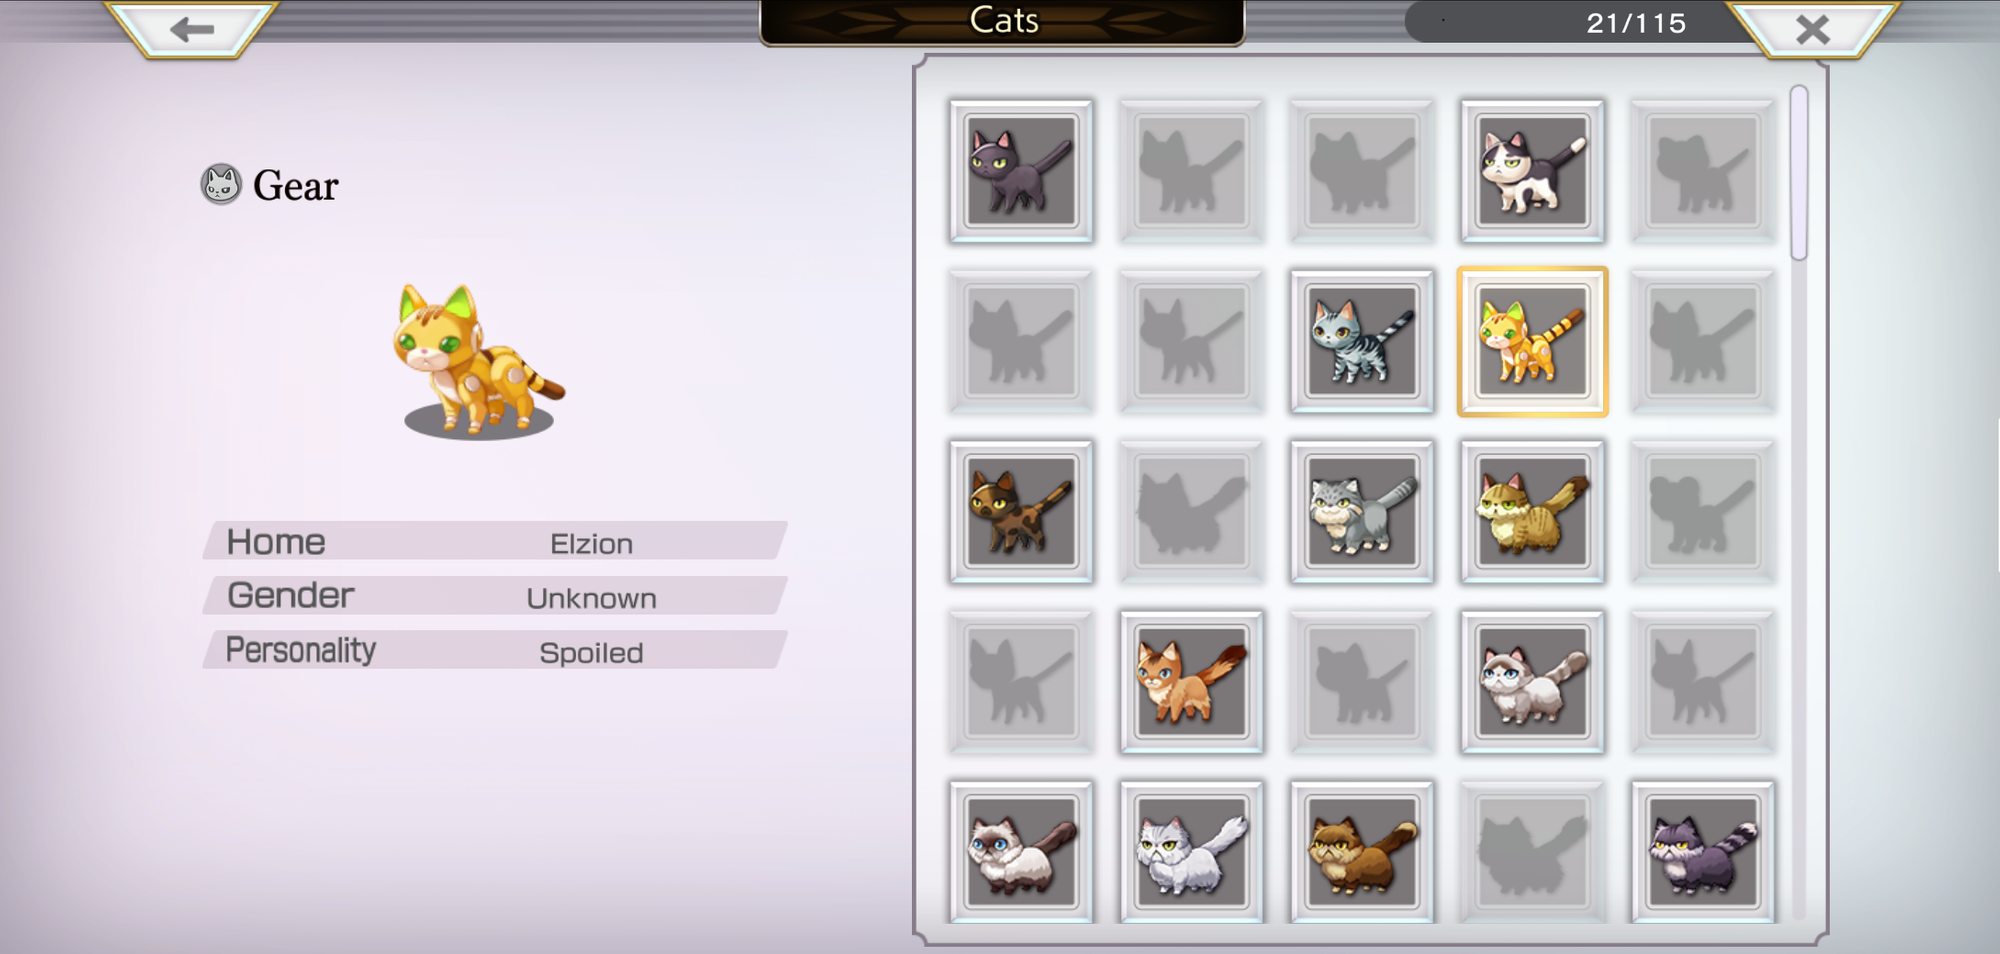 A screenshot of the Cat Catalogue, showing that some cats have been found but others are missing. Each cat has a name, home location, gender and personality.